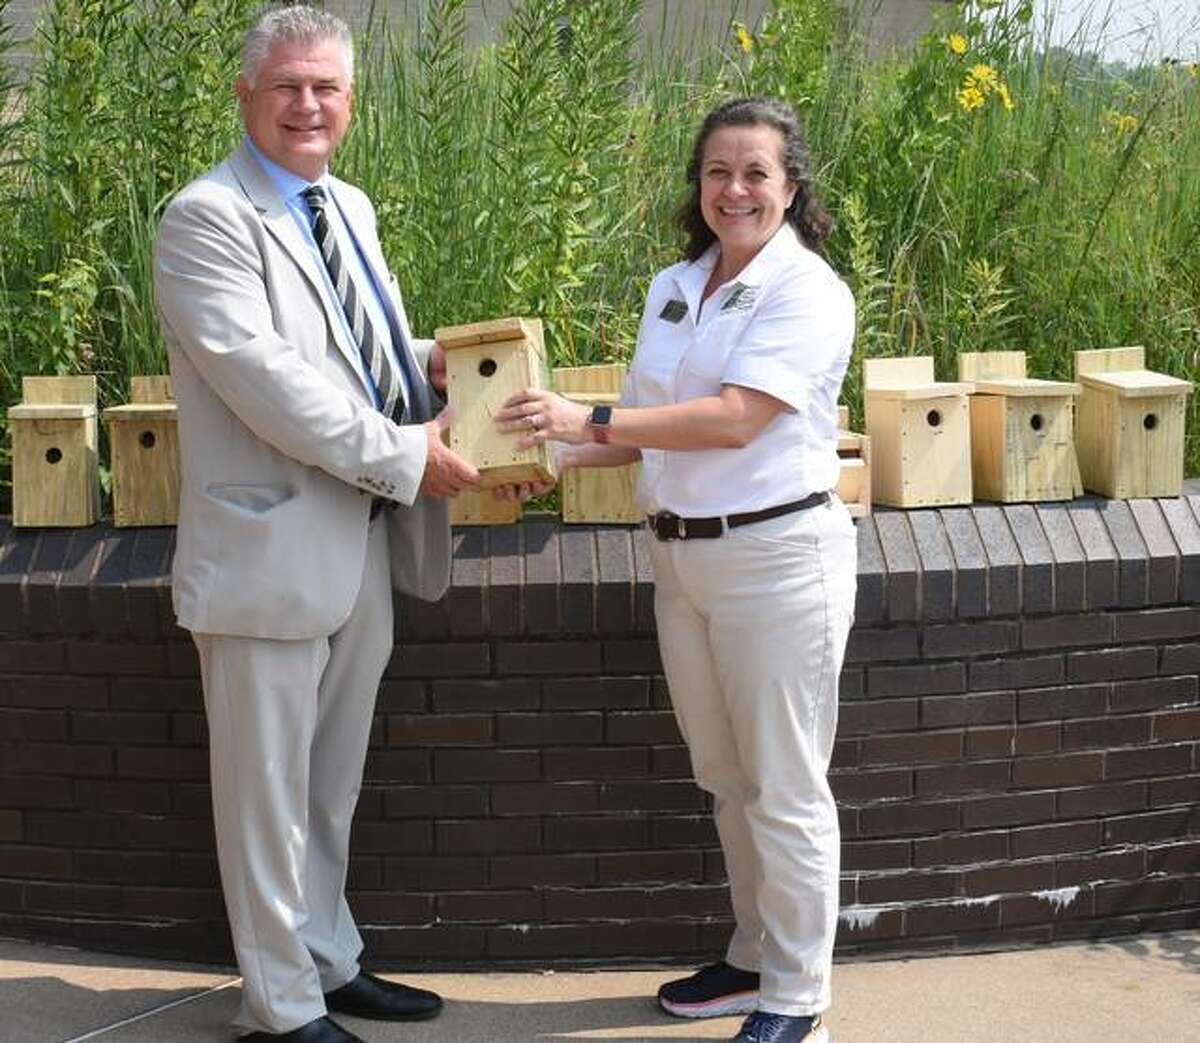 Madison County Regional Superintendent Robert Werden, left recently presented Lori Belkamp, Superintendent of the Cahokia Mounds State Historic Site, with bird and bat houses made by Madison County students at the Regional Office of Education Summer Construction Camp.